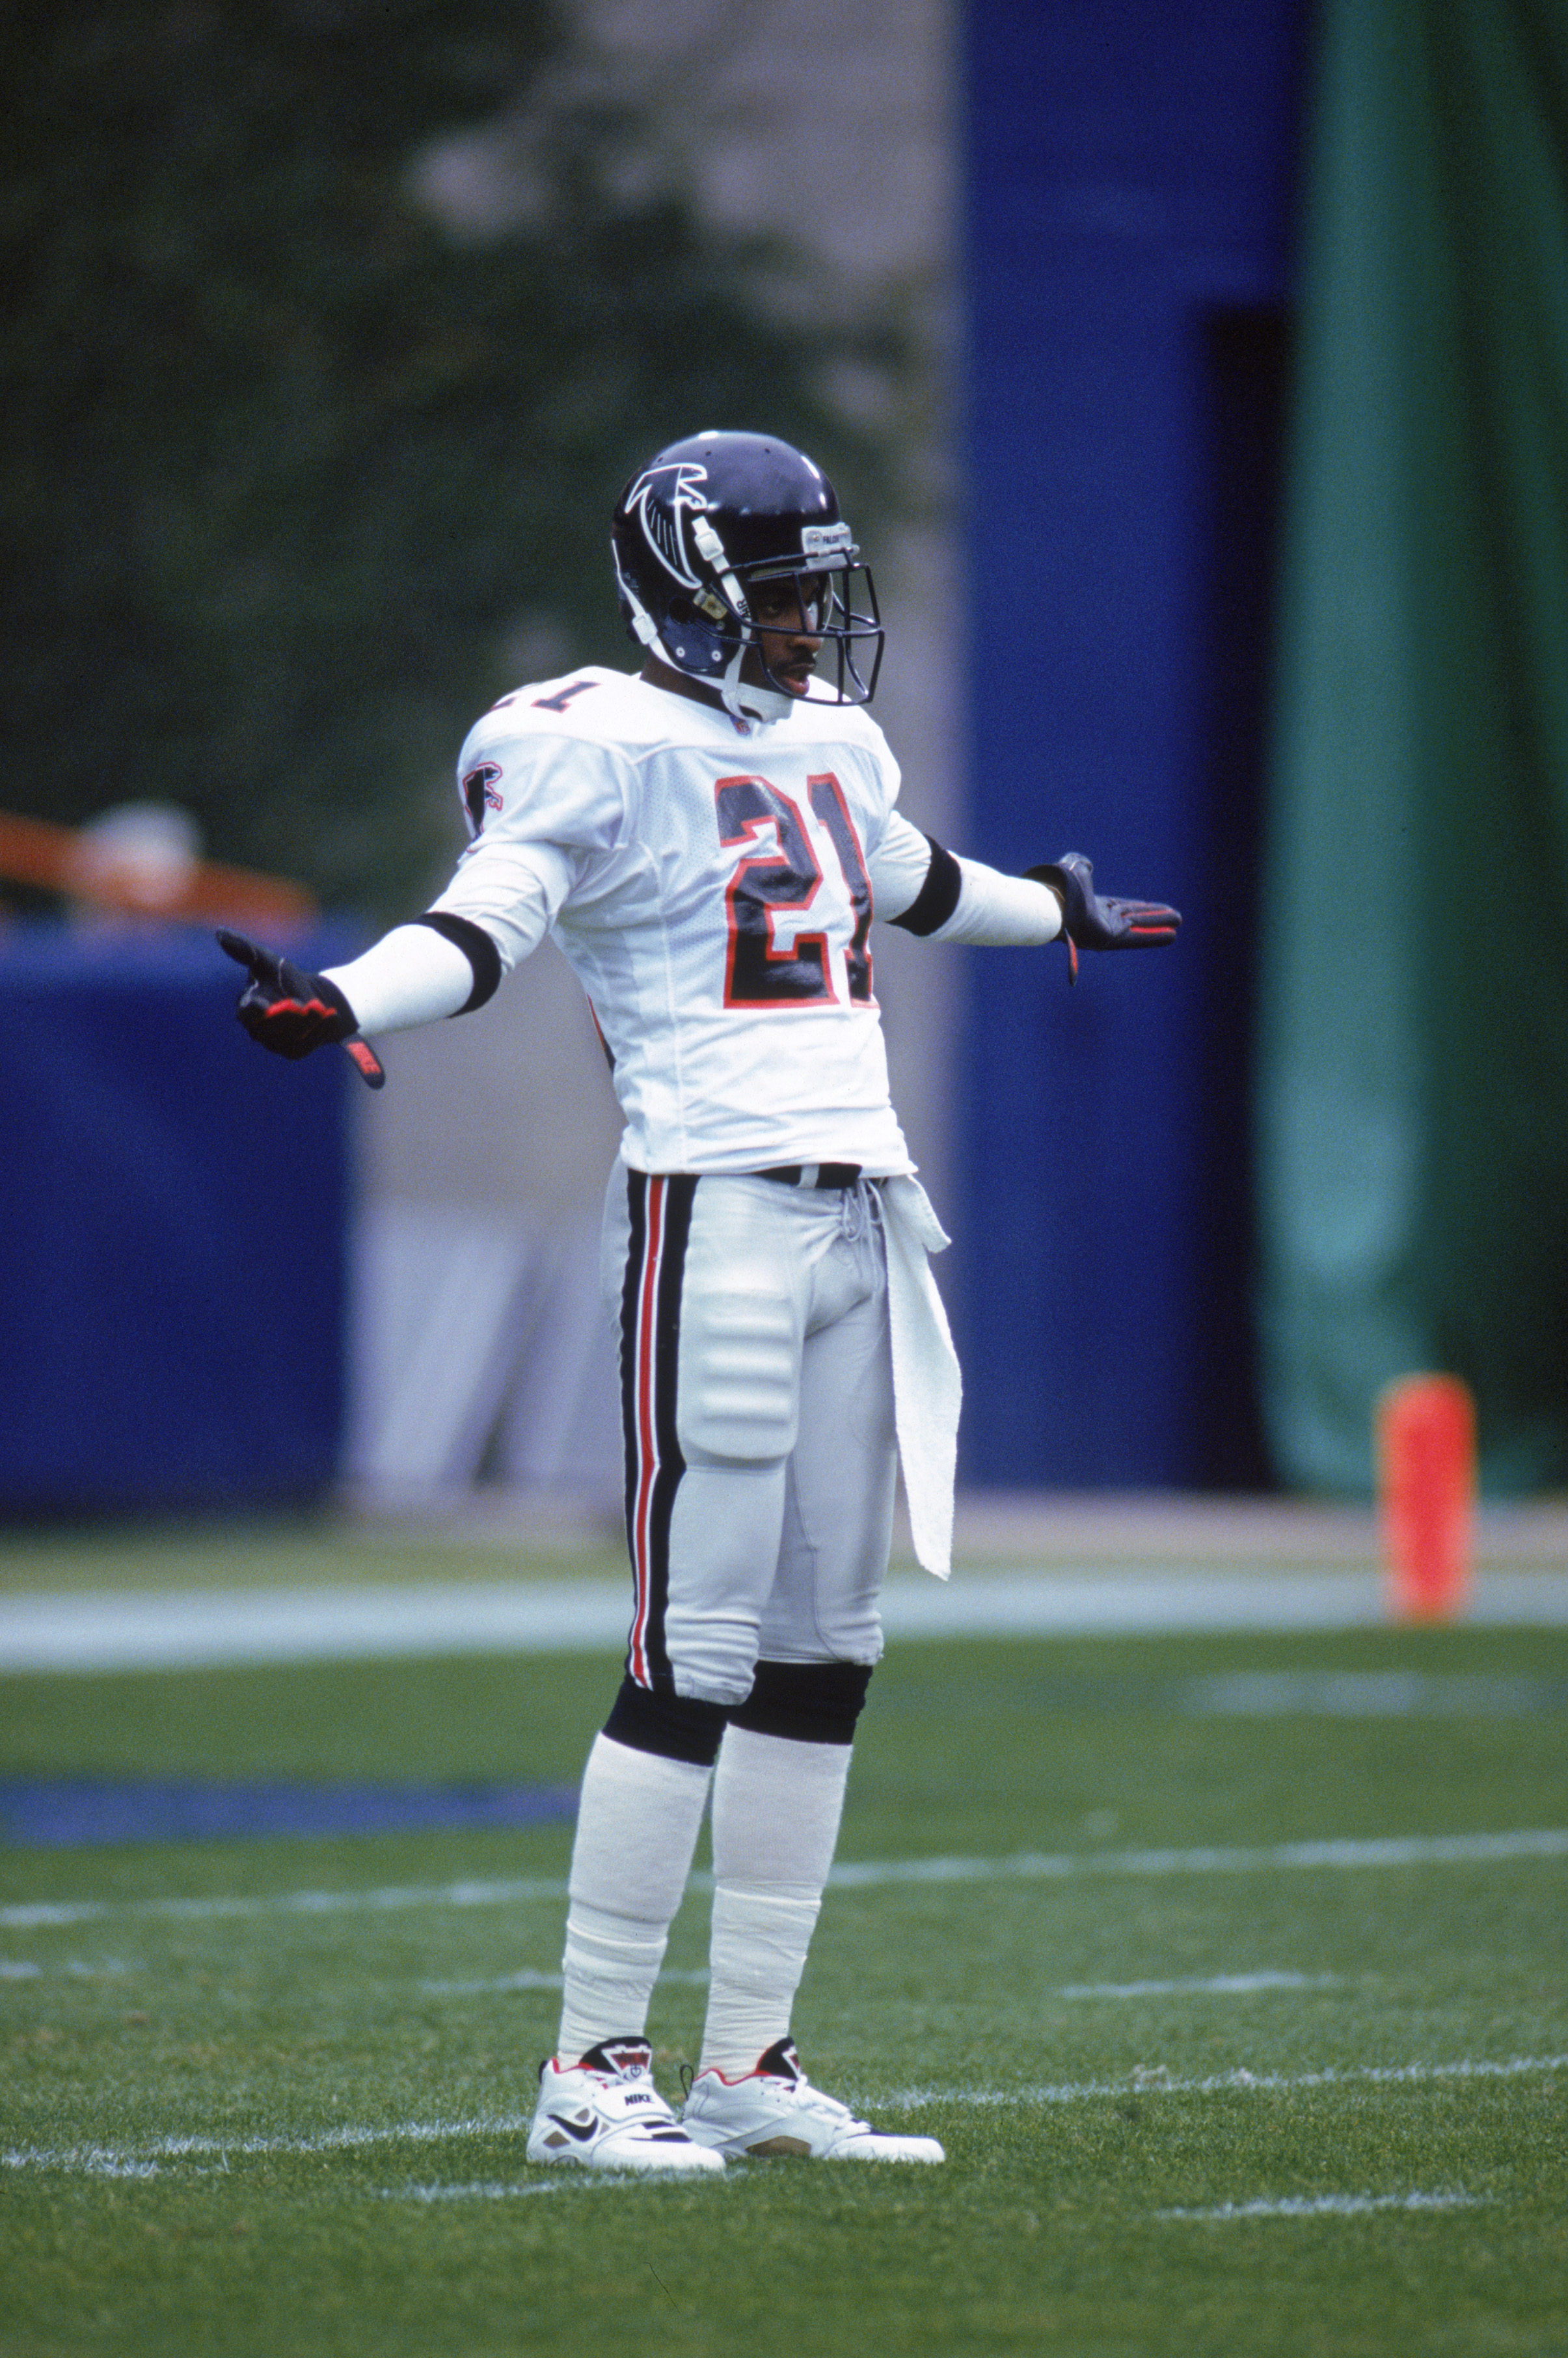 ANAHEIM, CA - DECEMBER 27:  Defensive back Deion Sanders #21 of the Atlanta Falcons strikes a pose as he waits for play during a game against the Los Angeles Rams at Anaheim Stadium on December 27, 1992 in Anaheim, California.  The Rams won 38-27.  (Photo